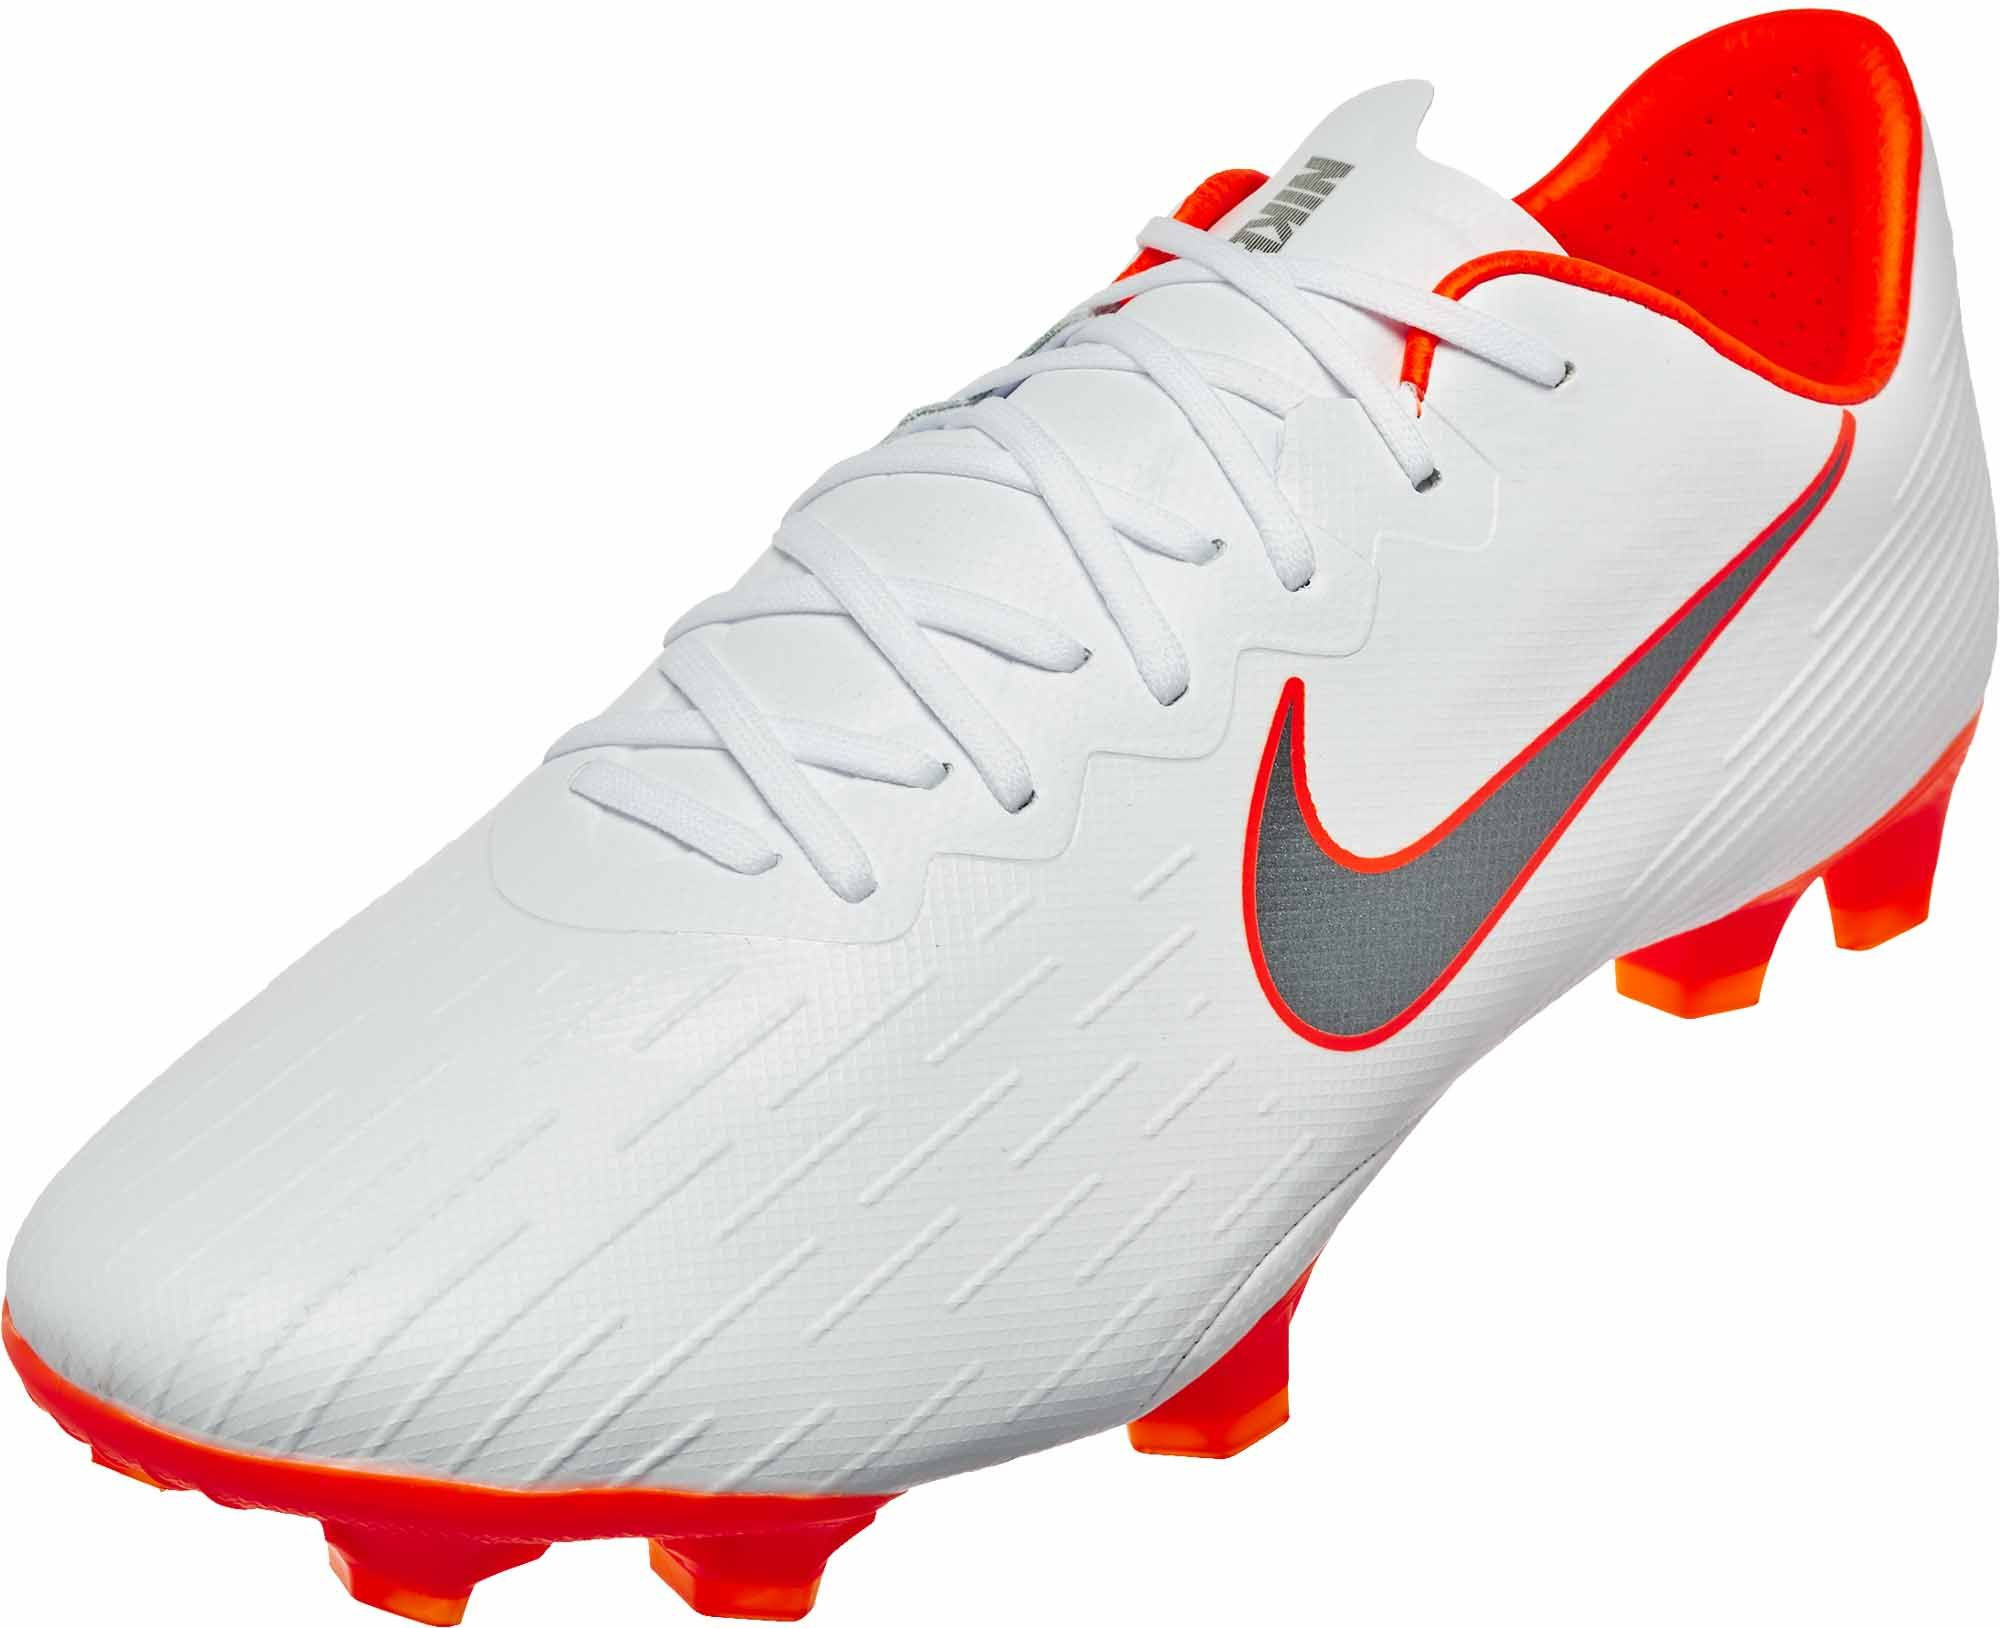 Just Do It pack Nike Mercurial Vapor 12 Pro. Buy yours from SoccerPro. c942f30e6388e